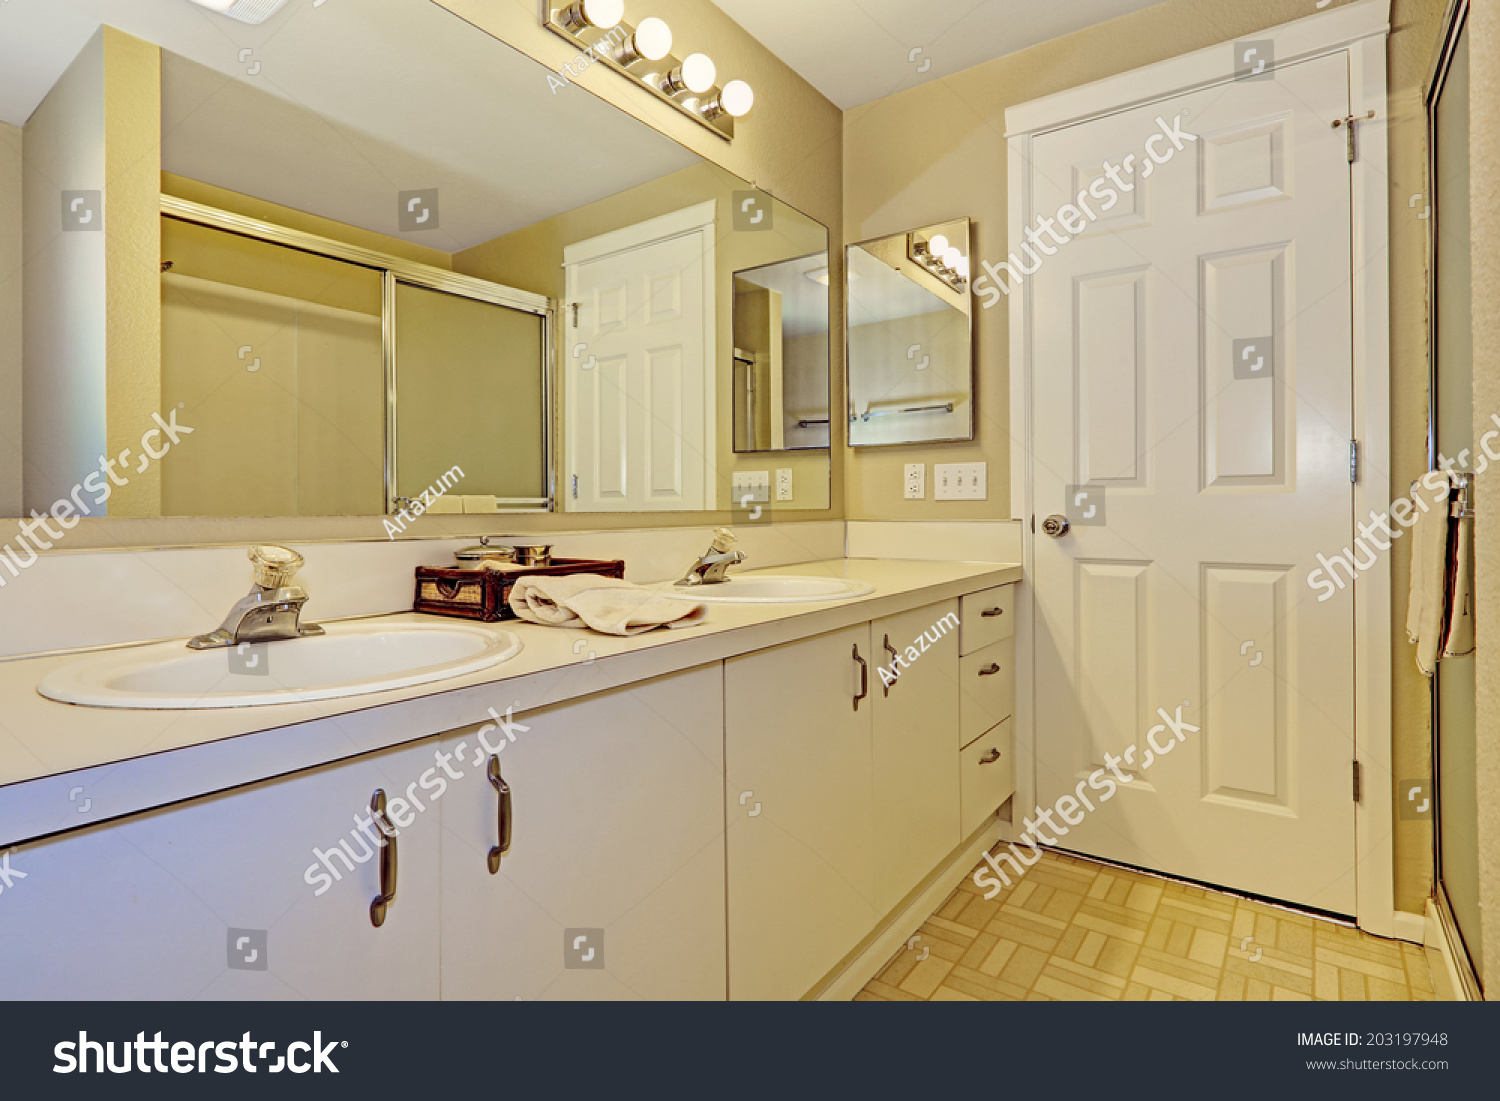 Simple Bathroom Interior White Cabinets Big Stock Photo 203197948 Shutterstock